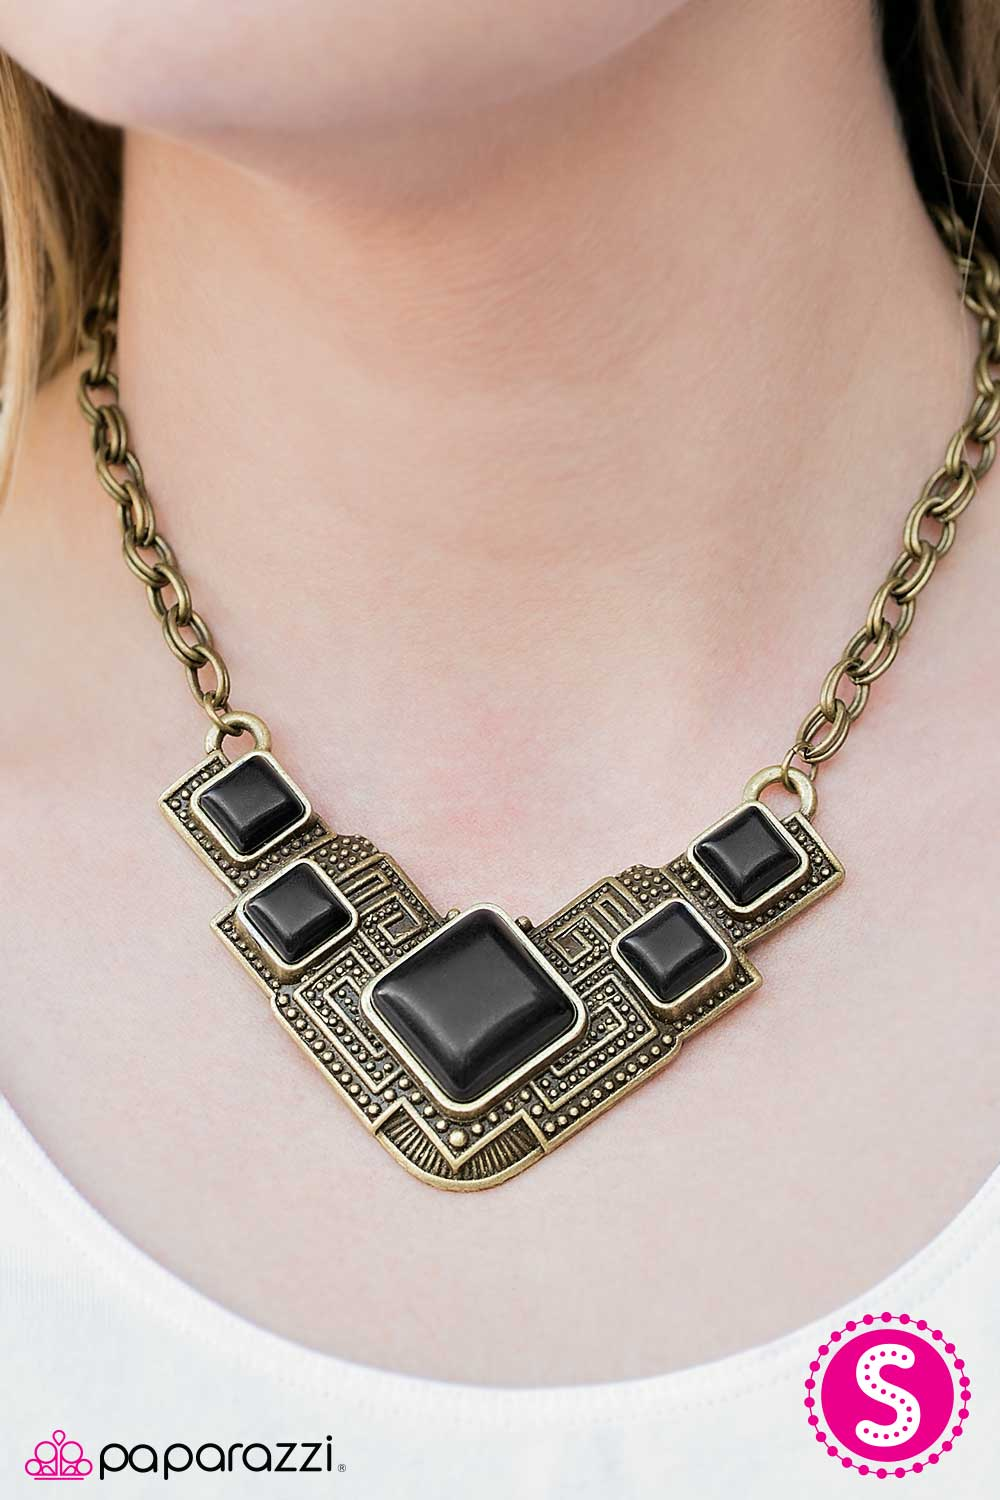 Way To Make An EMPRESS-ion! - Brass - Paparazzi necklace